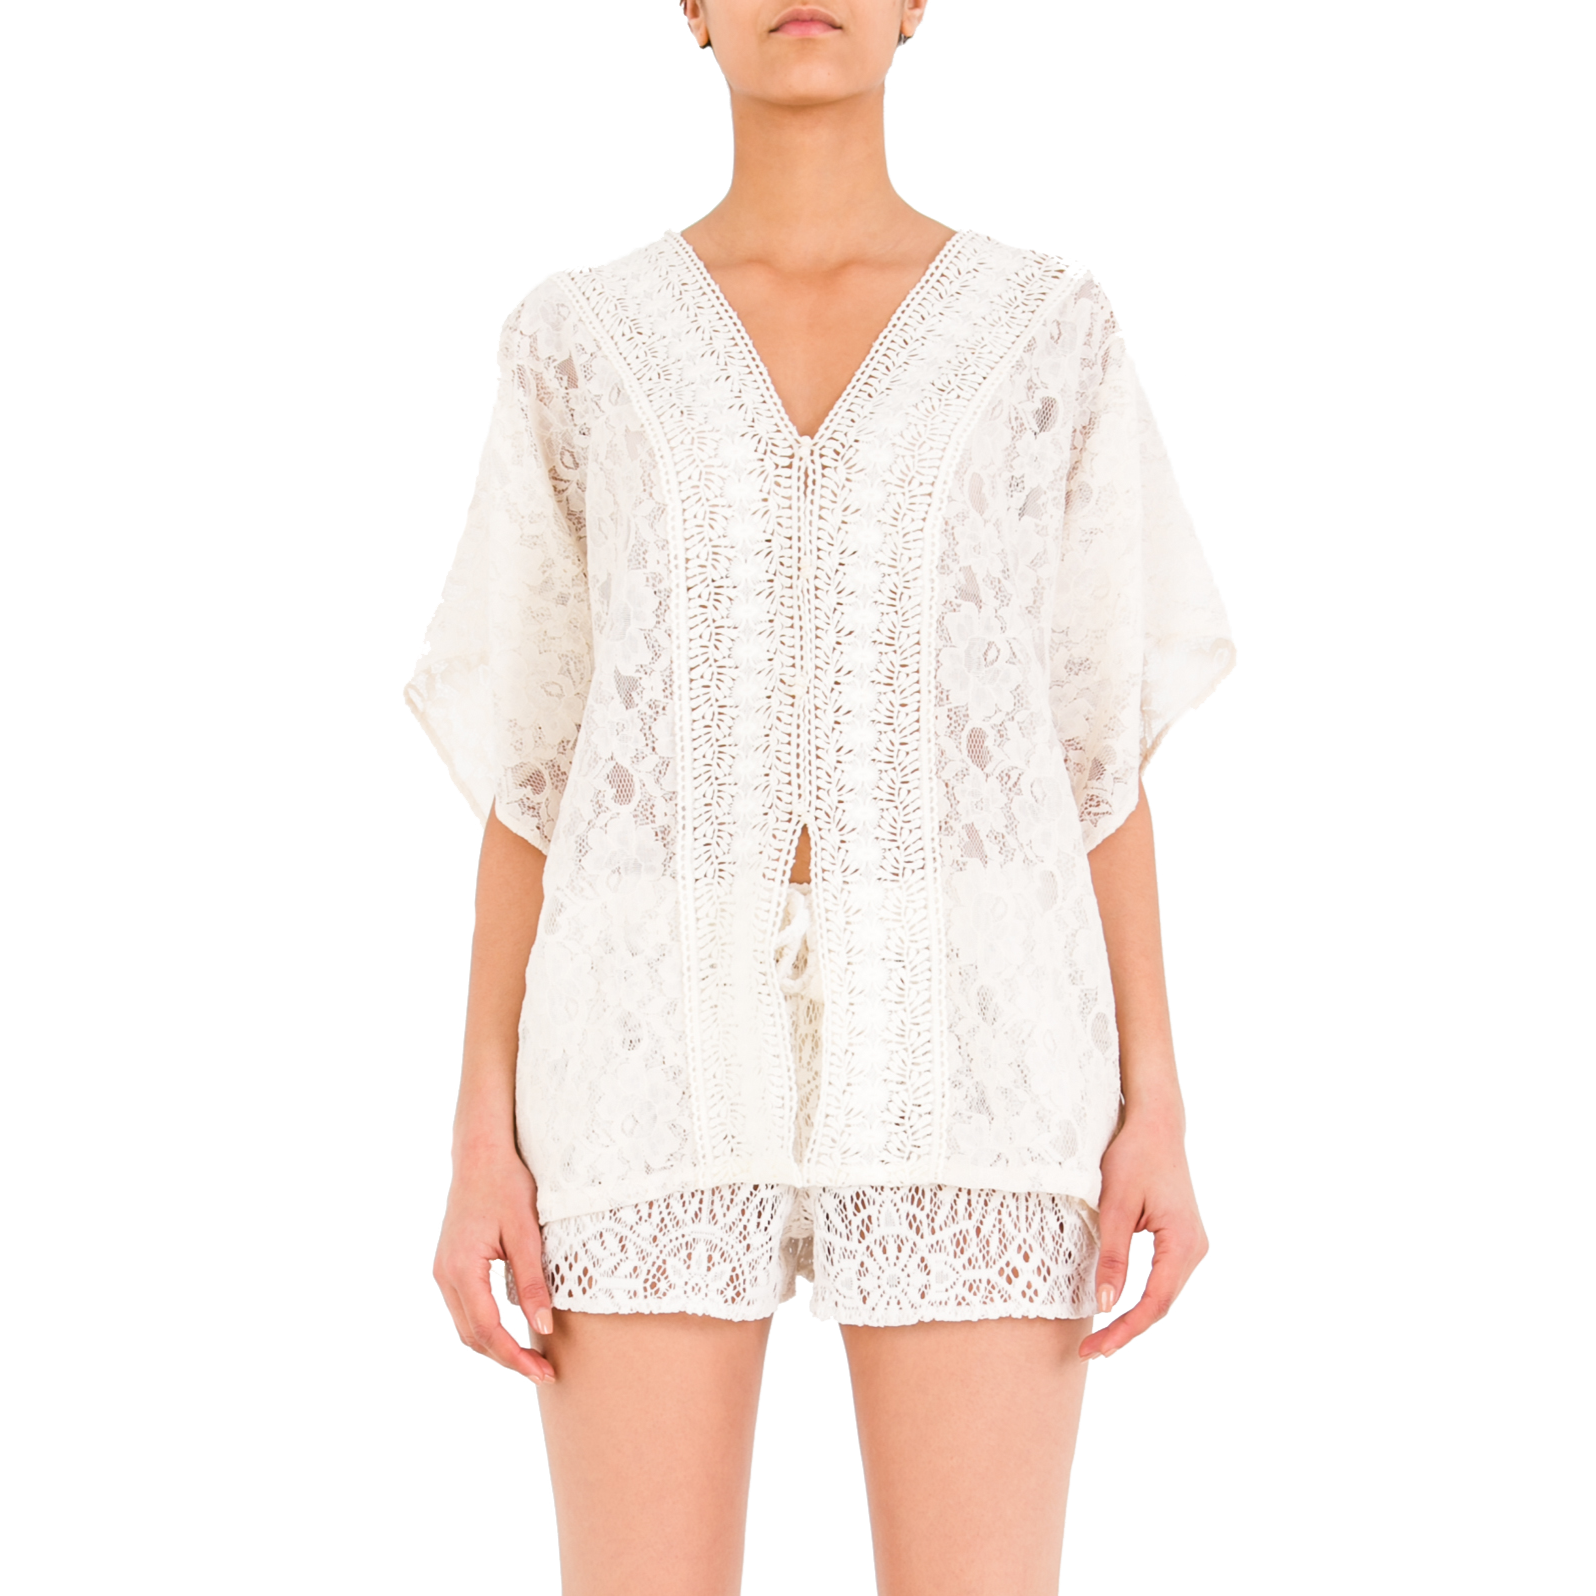 MARIELA Off-white Lace Top